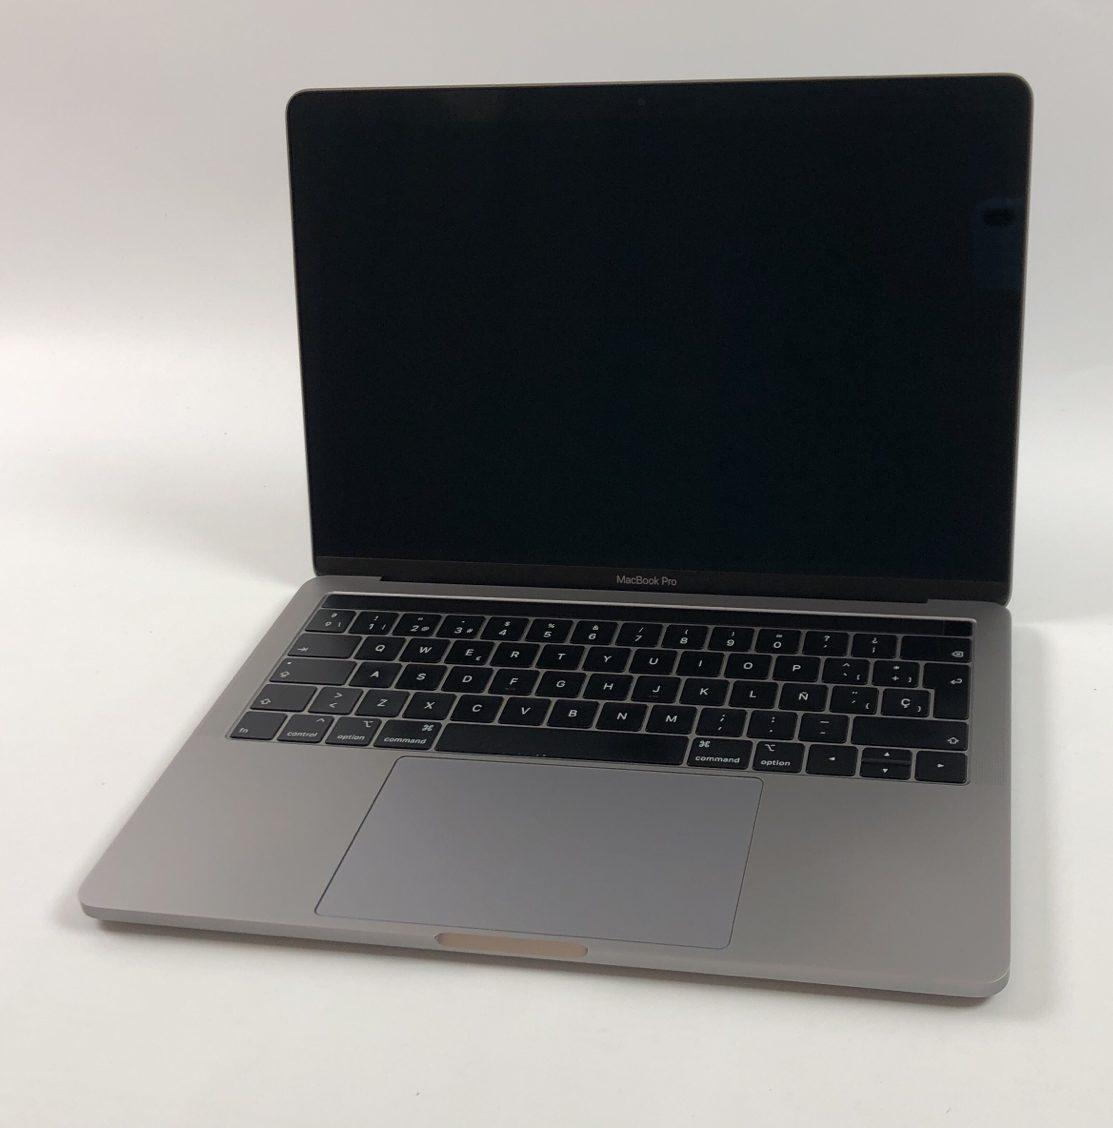 "MacBook Pro 13"" 4TBT Mid 2018 (Intel Quad-Core i5 2.3 GHz 8 GB RAM 256 GB SSD), Space Gray, Intel Quad-Core i5 2.3 GHz, 8 GB RAM, 256 GB SSD, imagen 1"